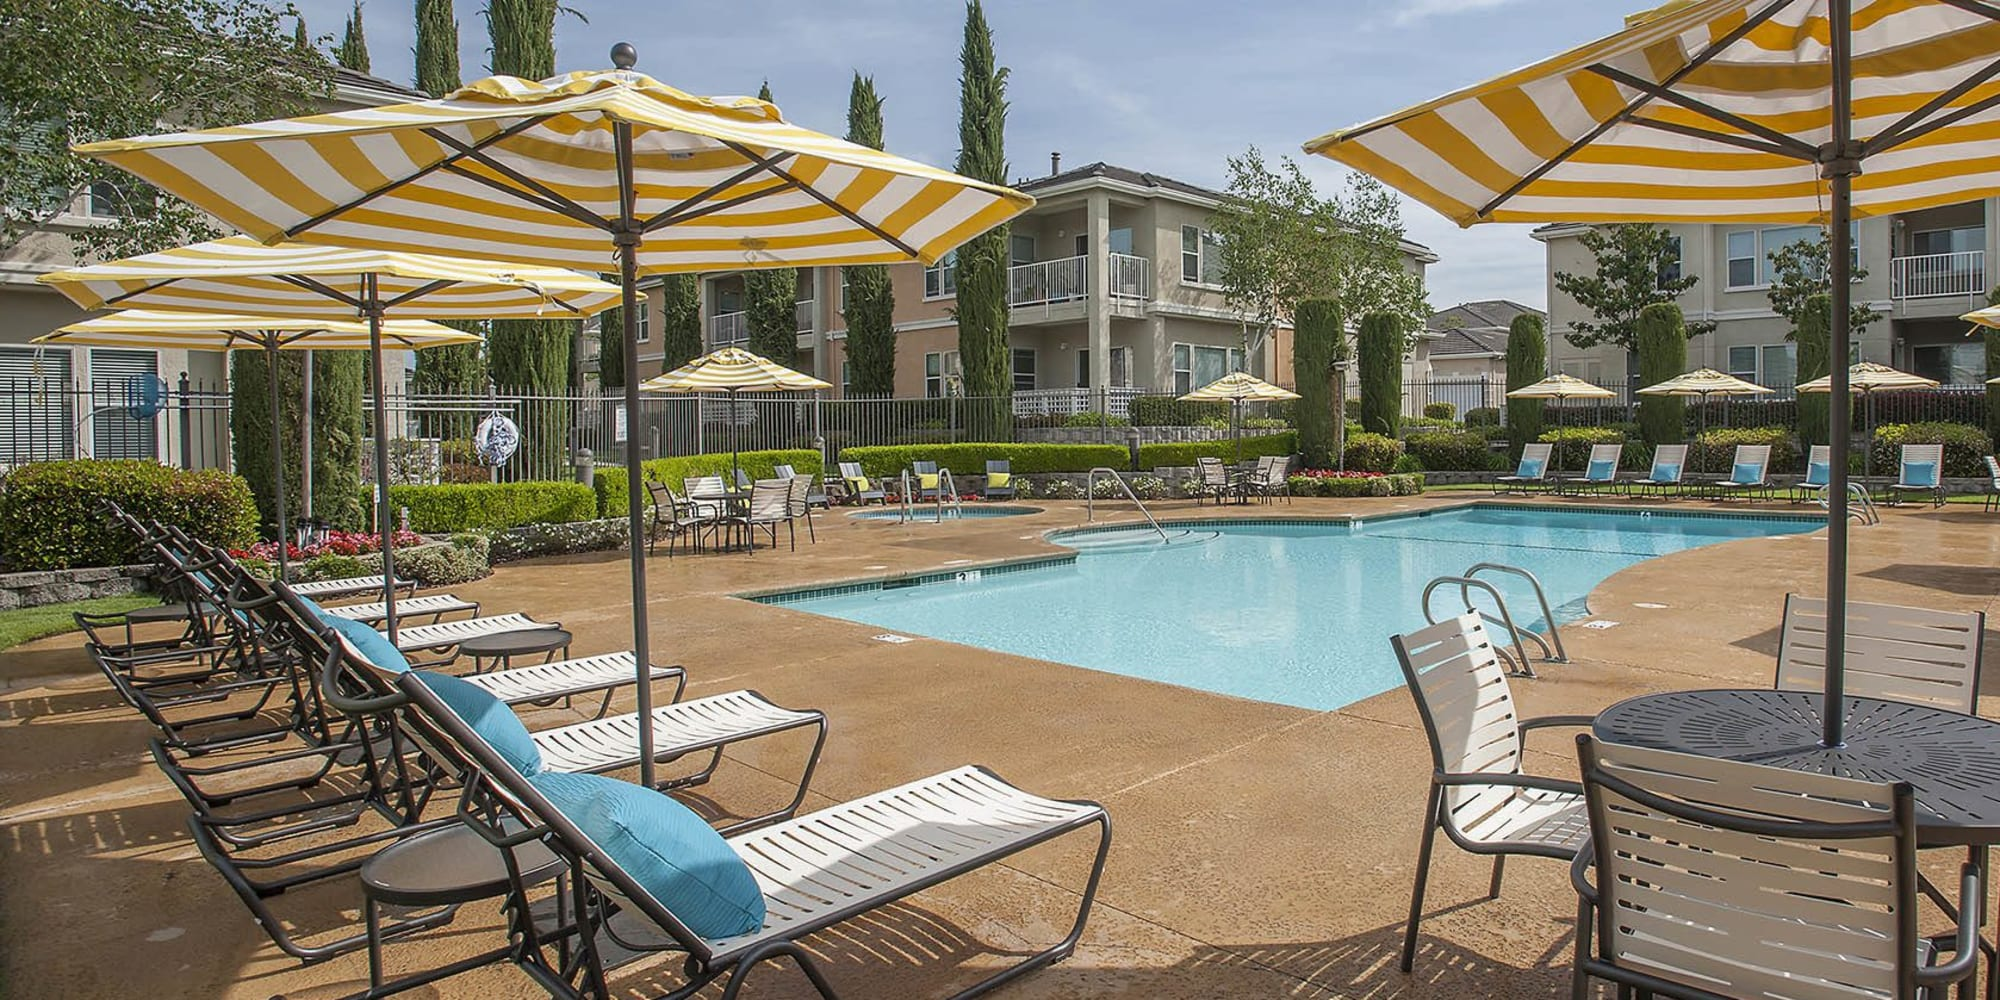 Apartments at Iron Point at Prairie Oaks in Folsom, California